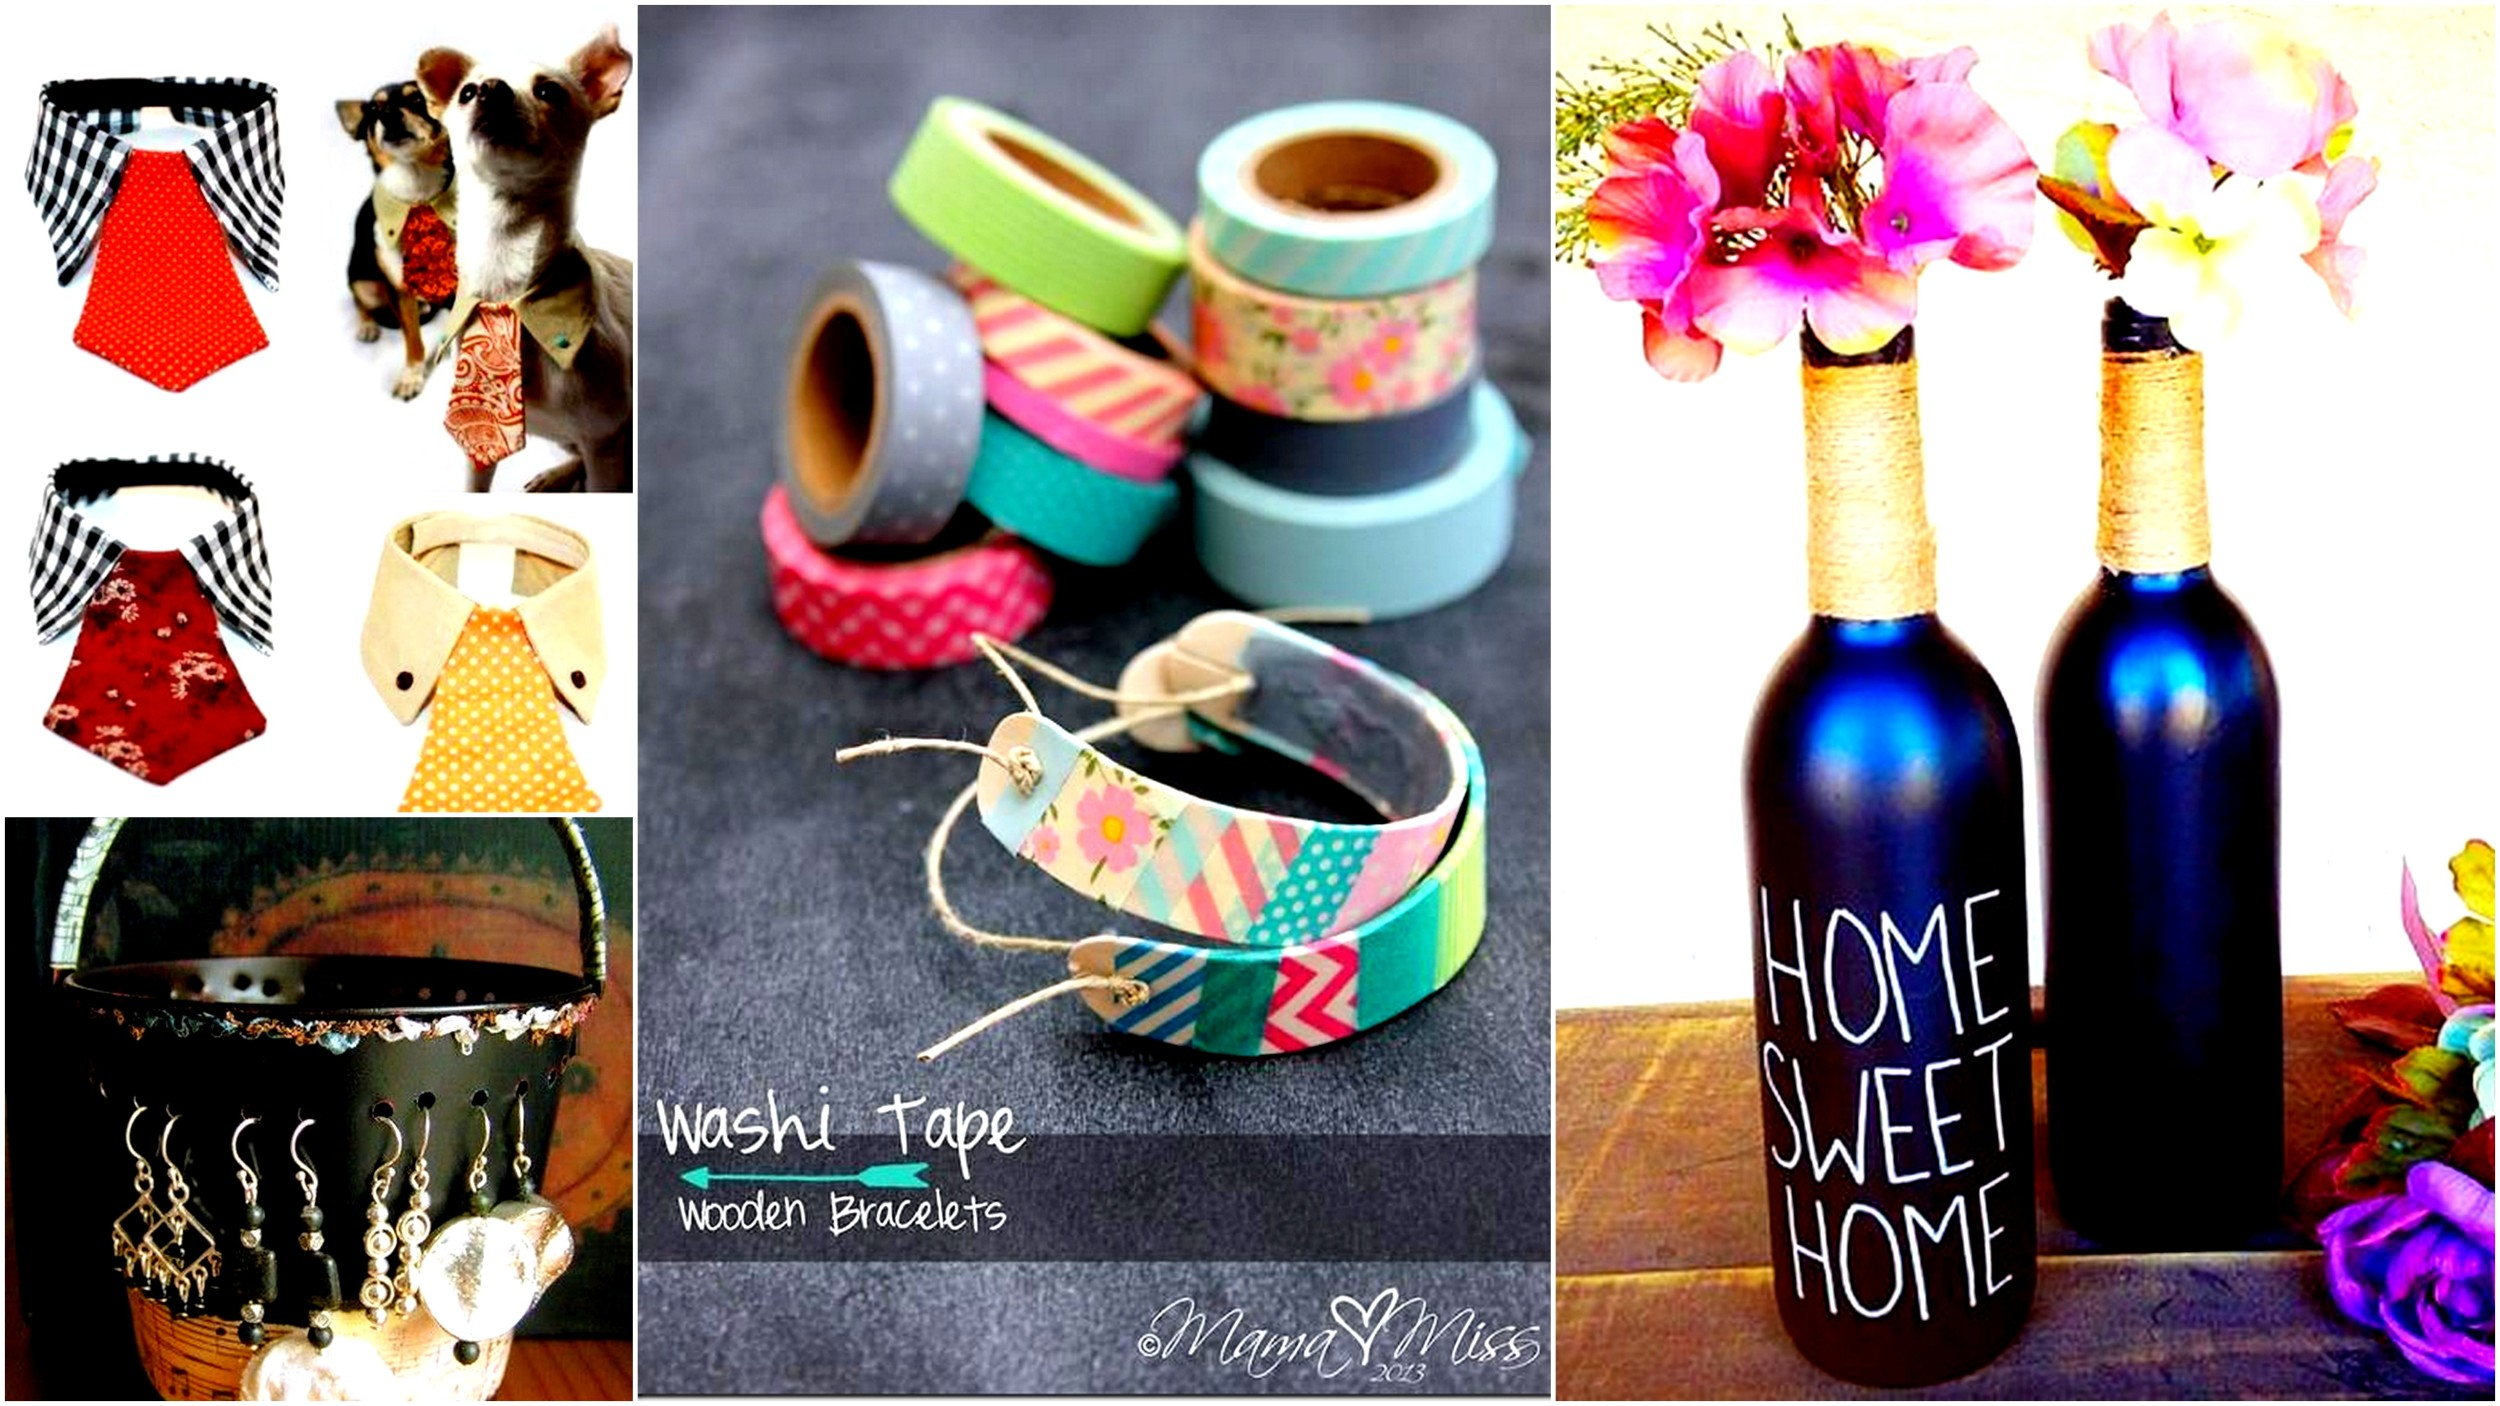 41 Smart And Creative Diy Projects That You Can Make And Sell With Ease